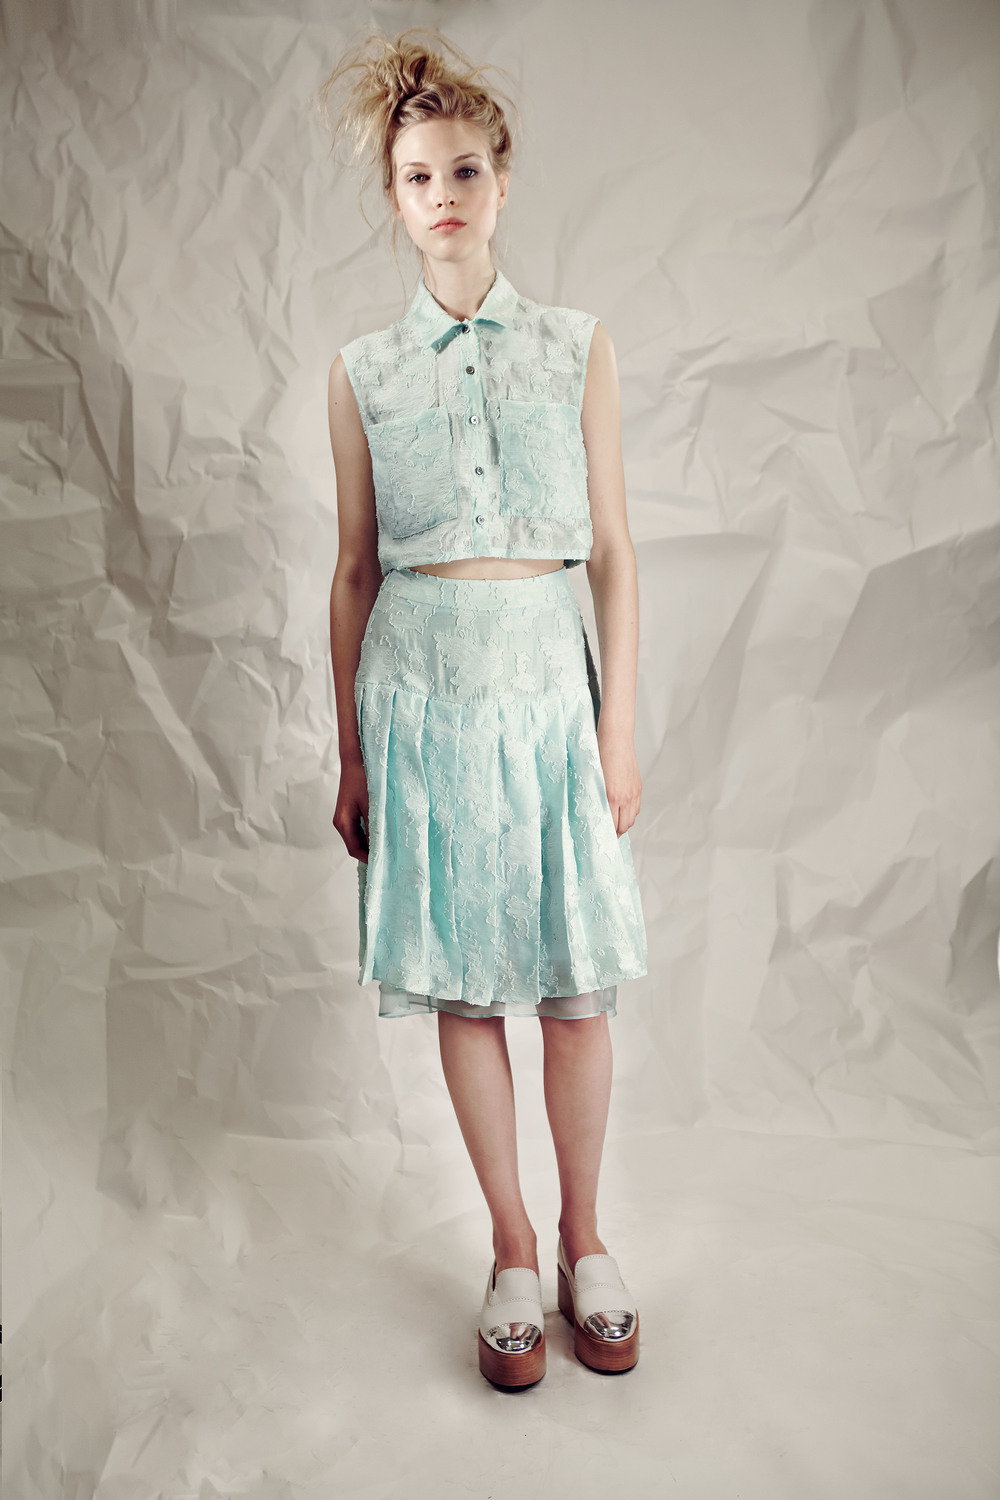 TIMO WEILAND RESORT 15 LOOK 13.jpg